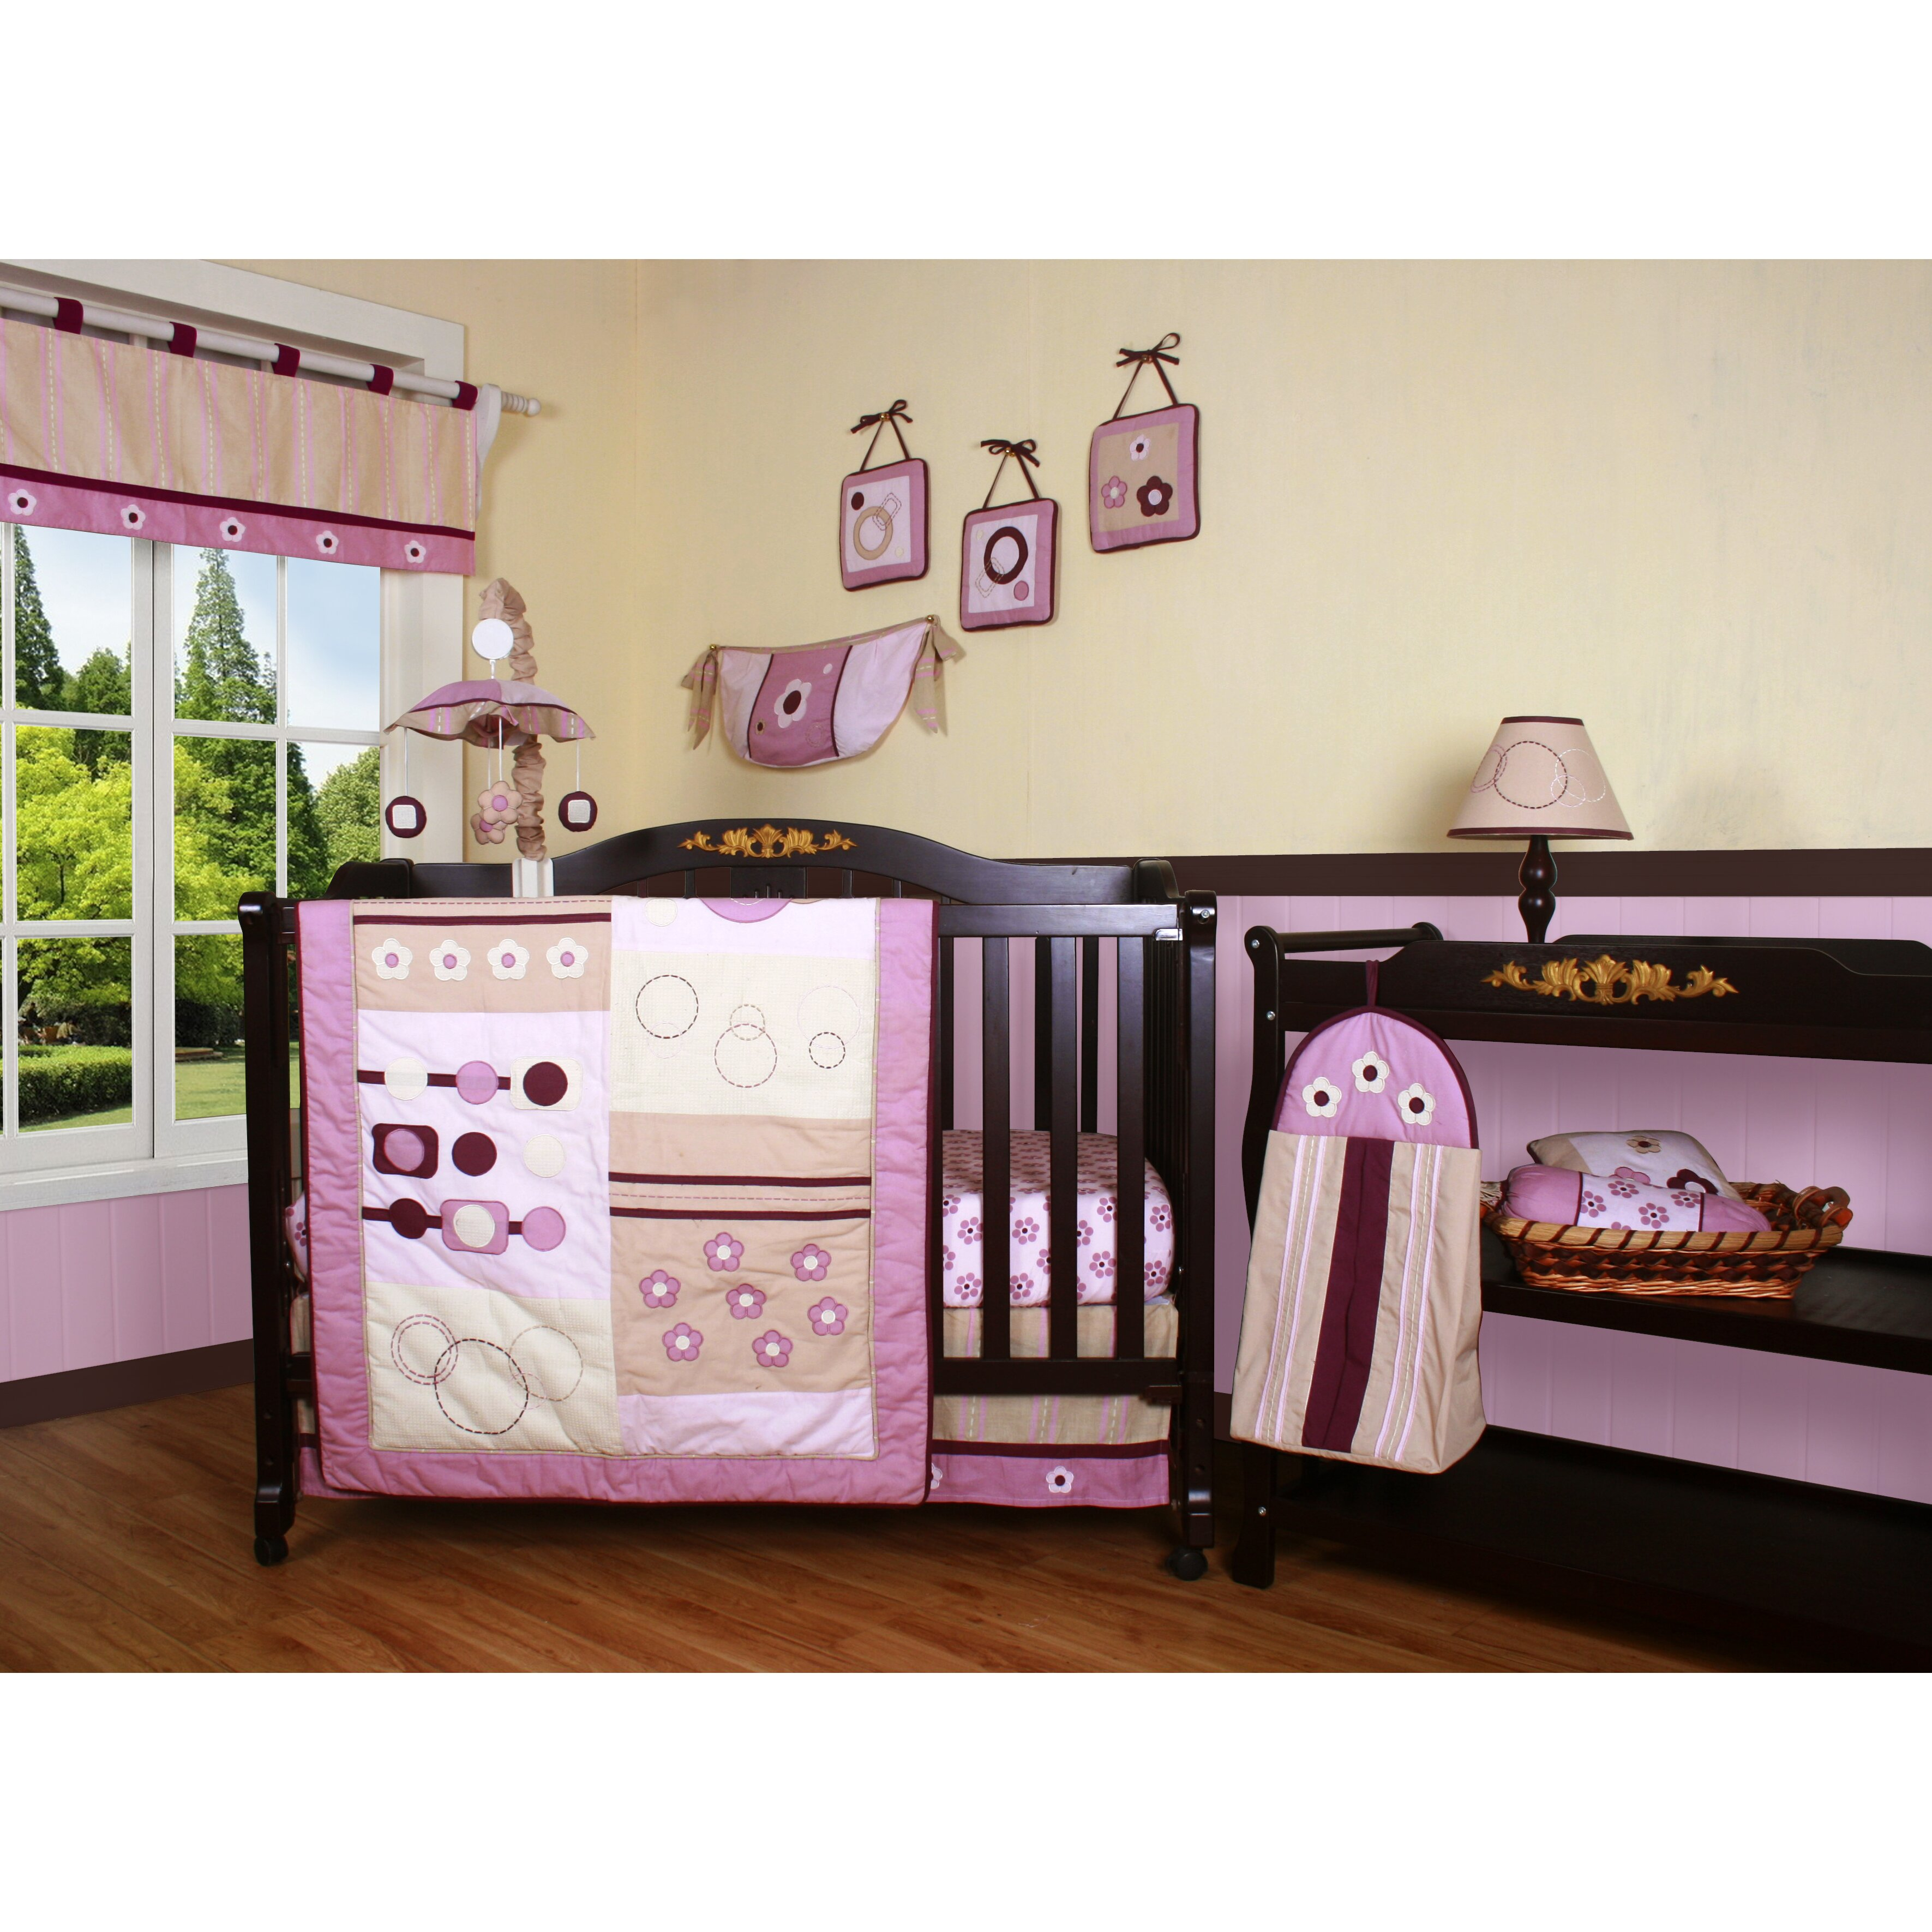 Crib for sale louisville ky - Geenny Boutique Baby Artist 13 Piece Crib Bedding Set